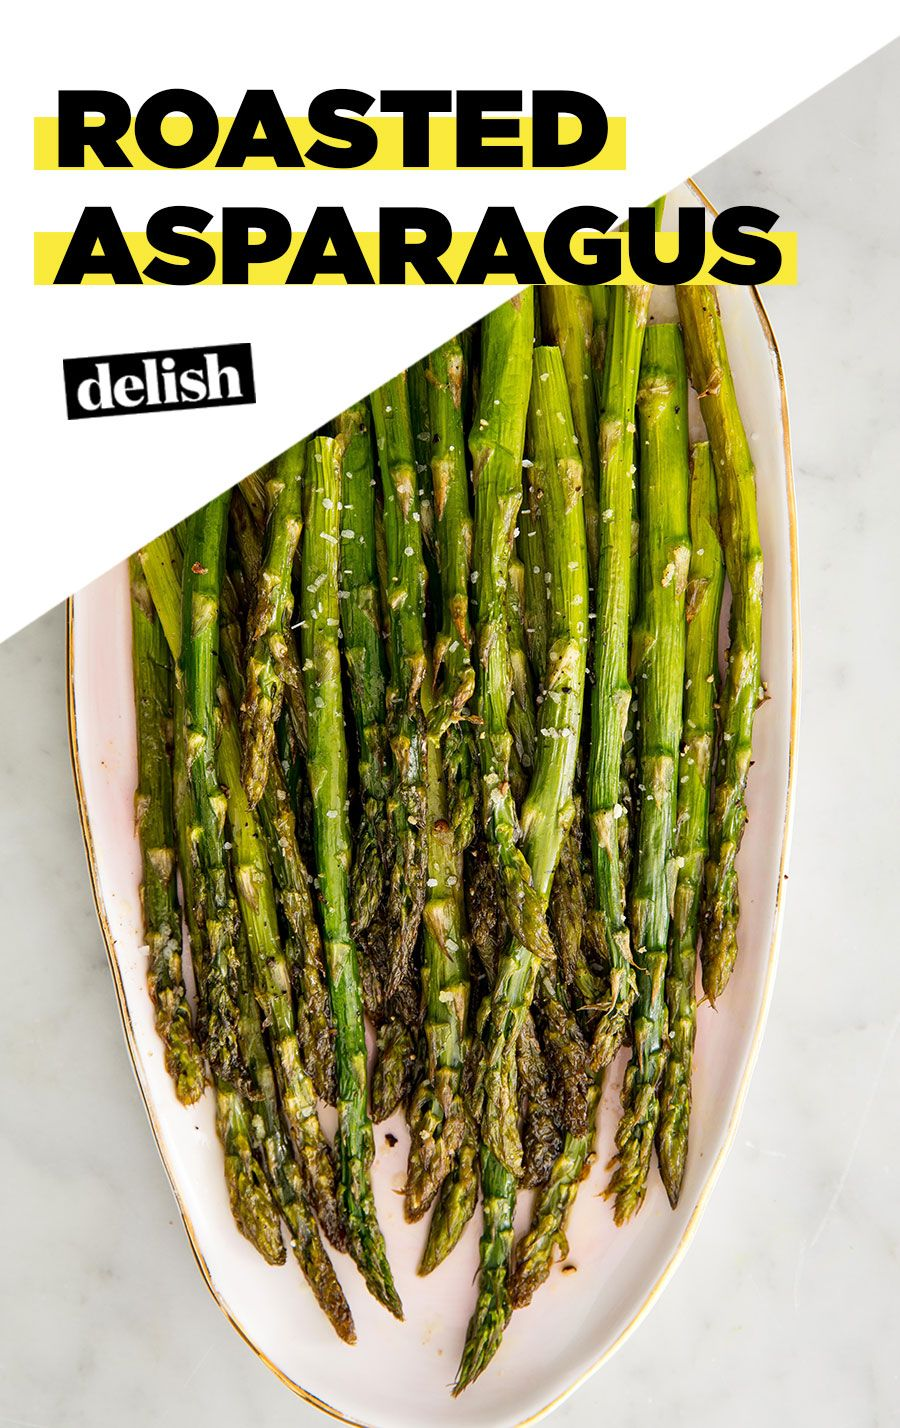 This Oven Roasted Asparagus Makes The Best Vegetable Side Recipe How To Cook Asparagus Roasted Asparagus Asparagus Recipes Roasted